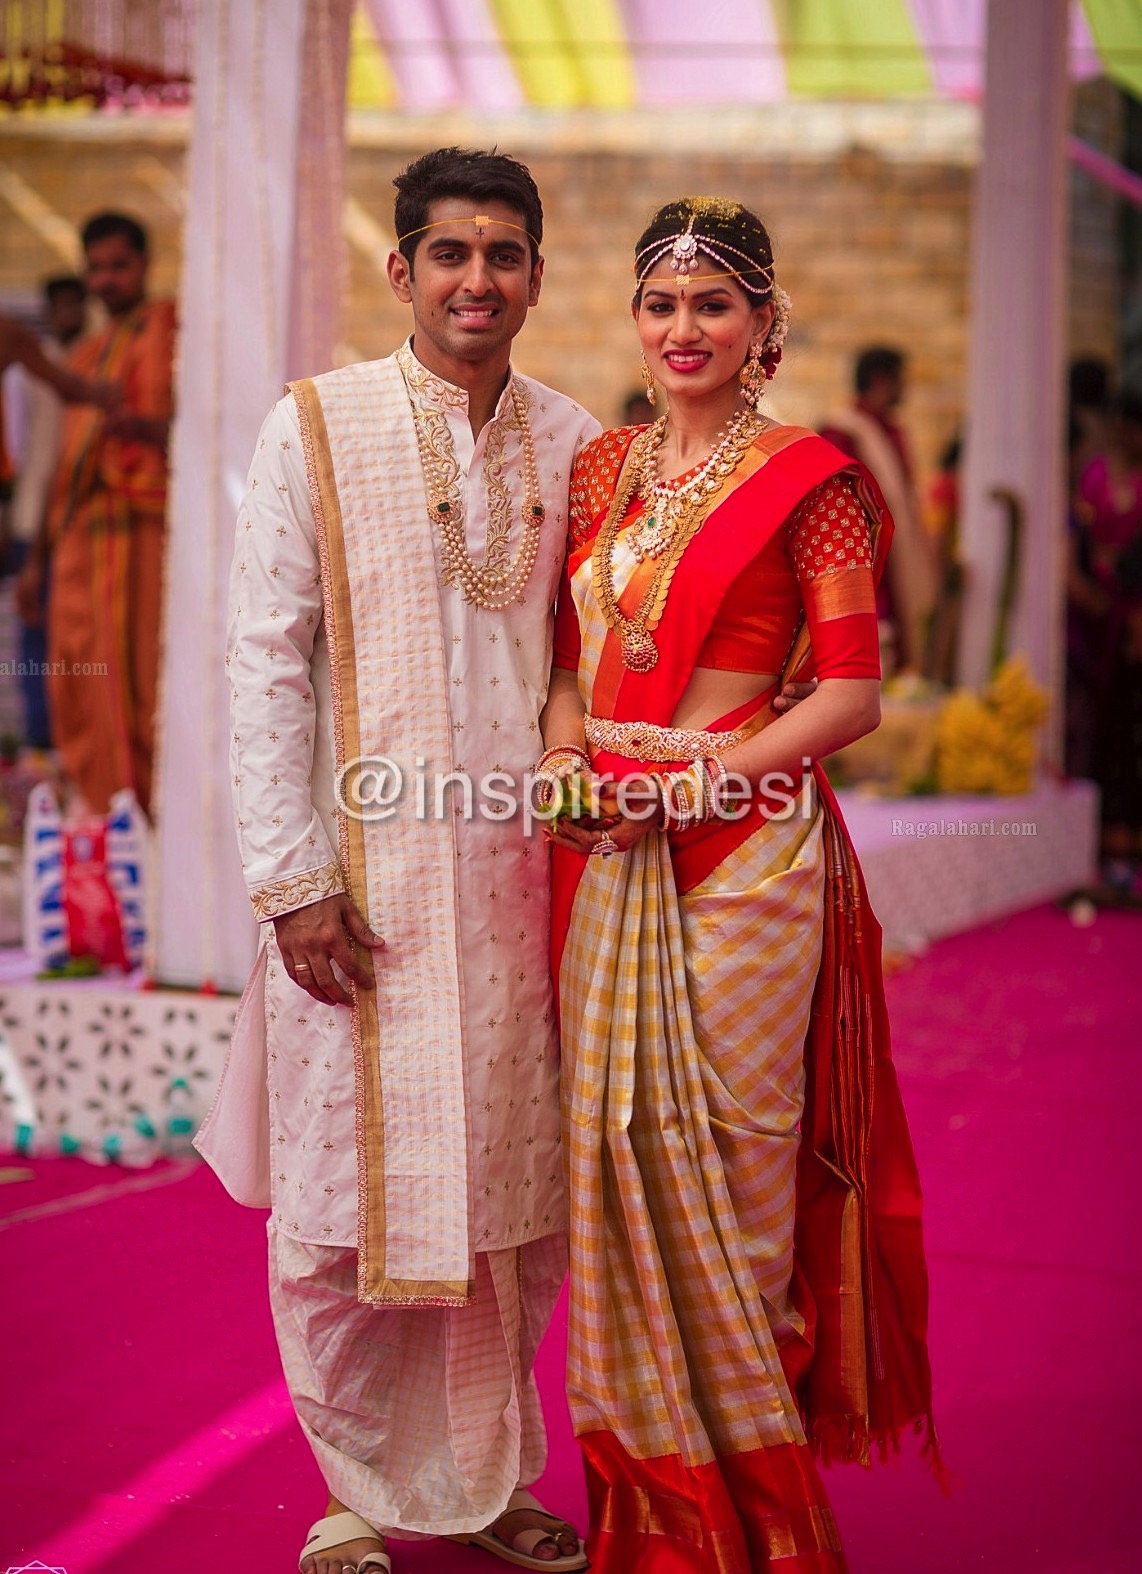 South Indian Wedding Dress For Bride And Groom | Wedding